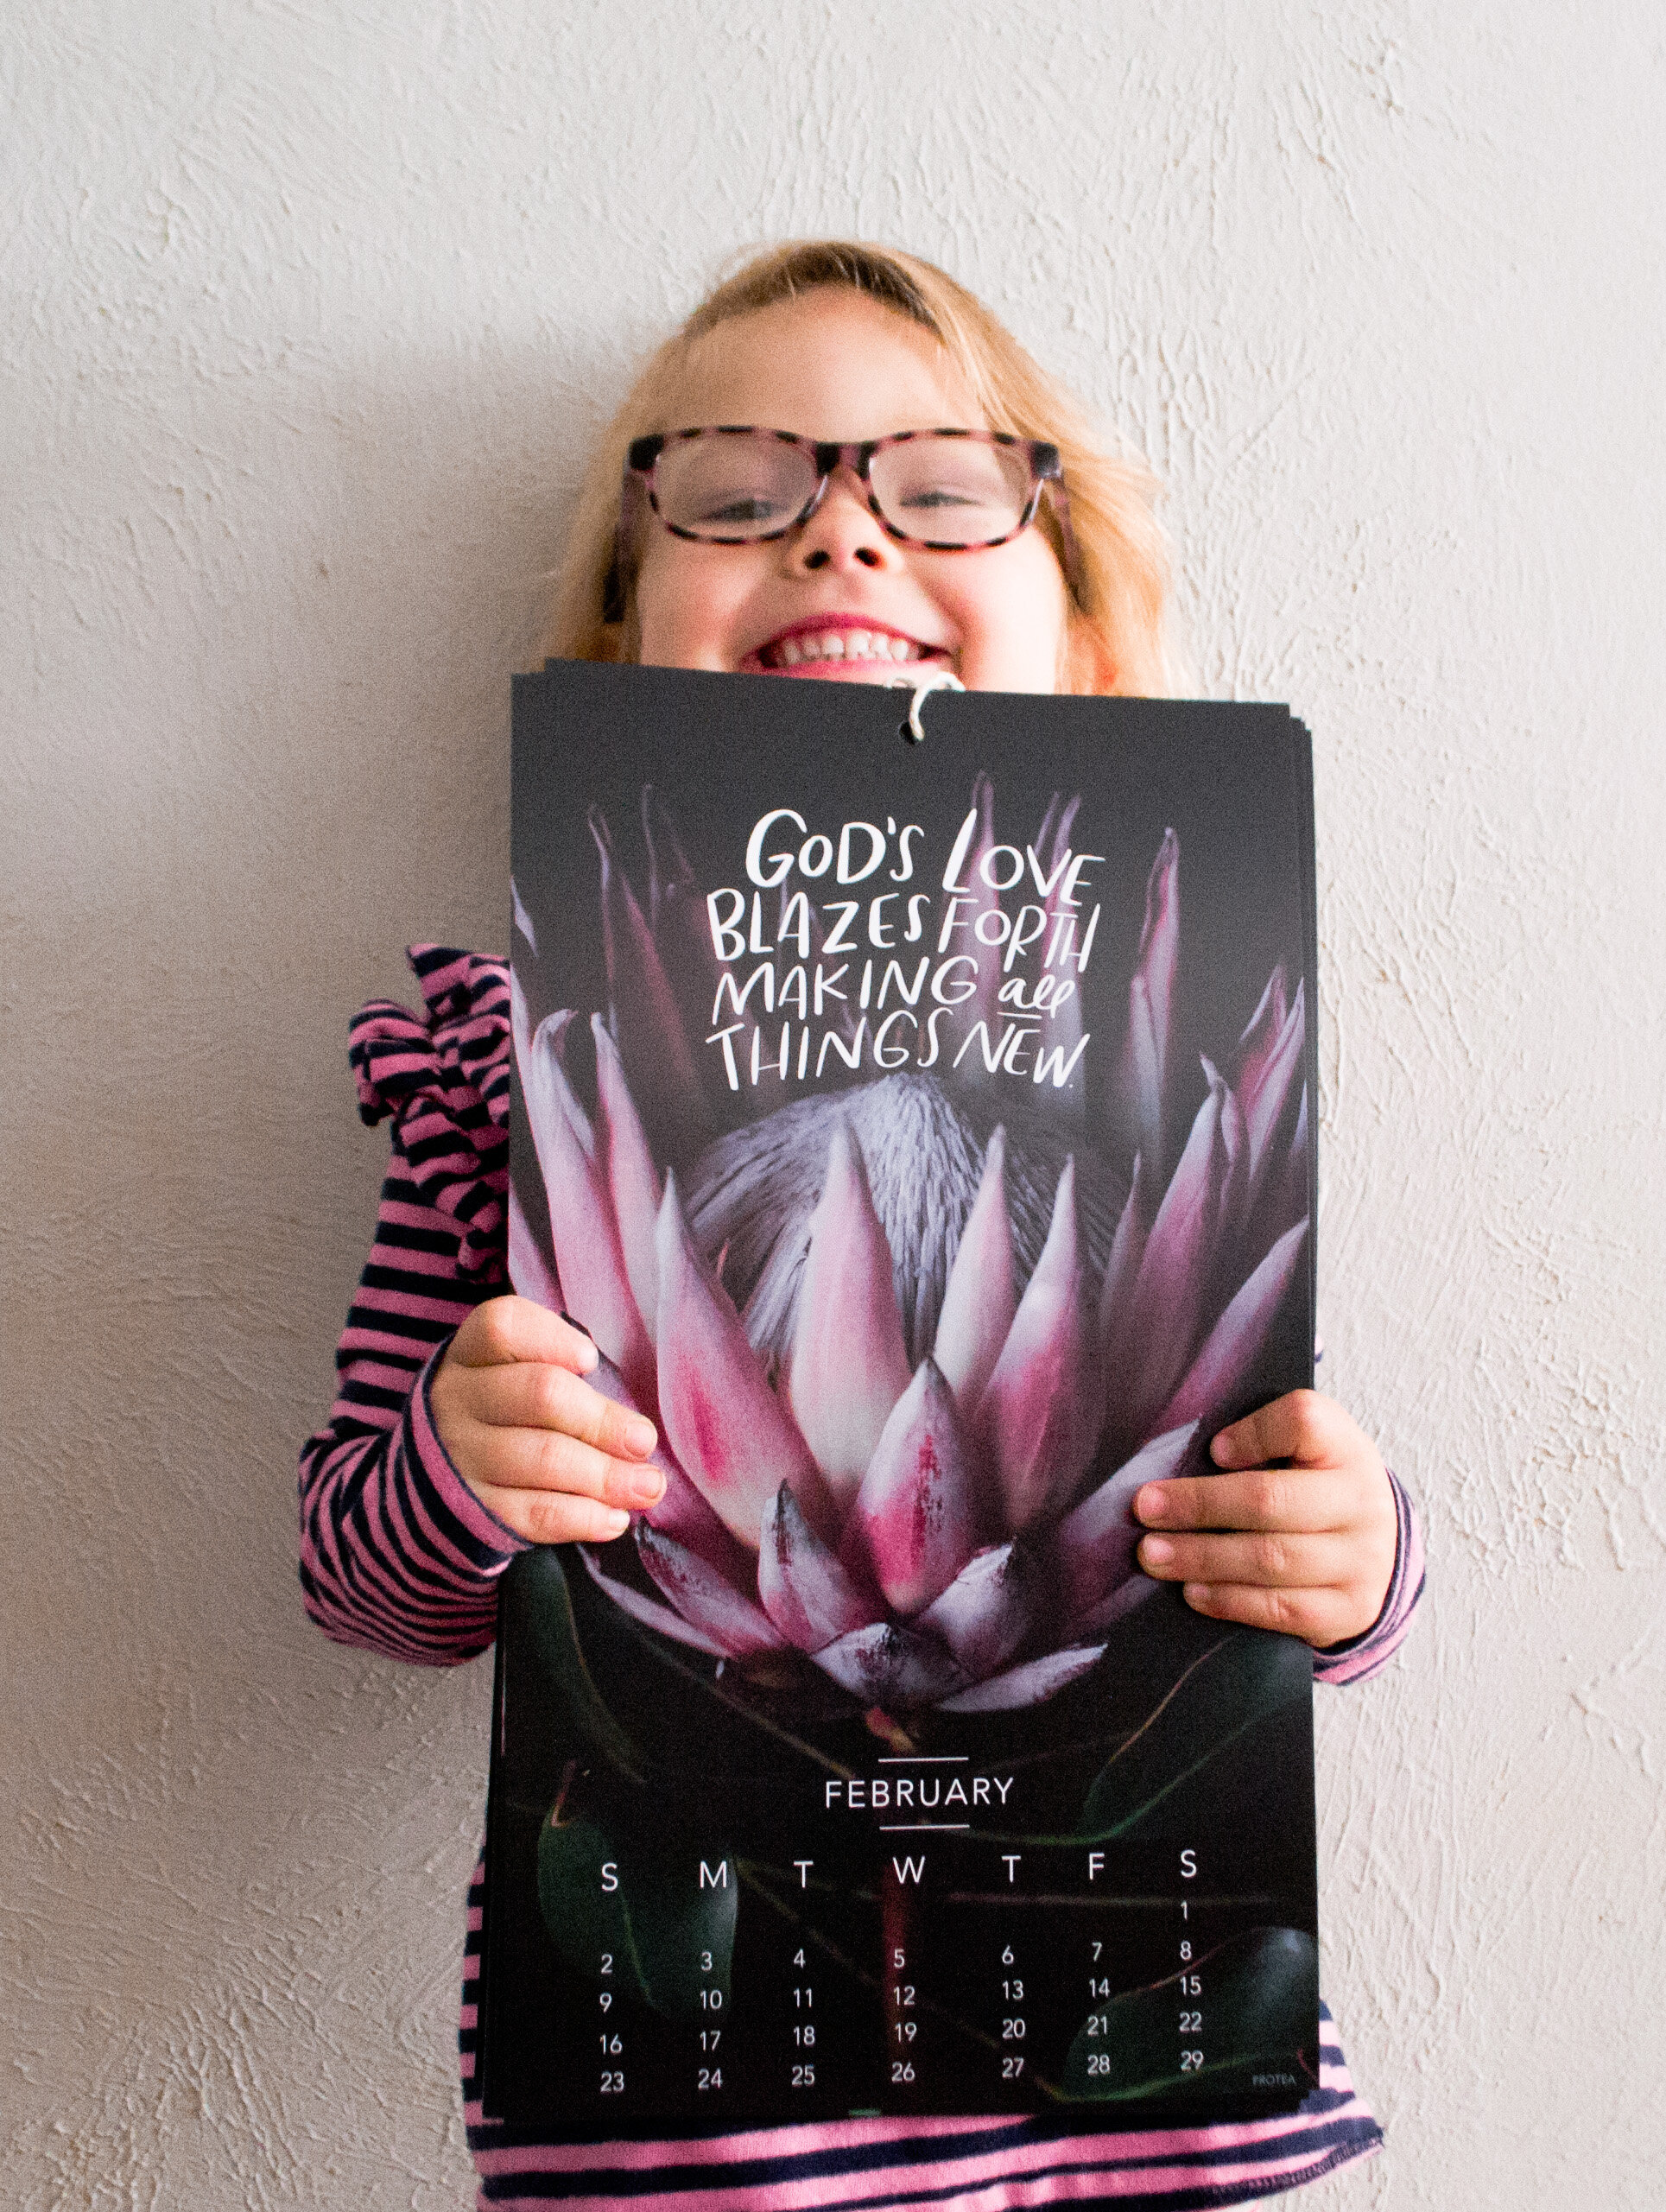 God's love blazes forth making all things new. From the 2020 Floral Wall Calendar: A year for beauty and truth.